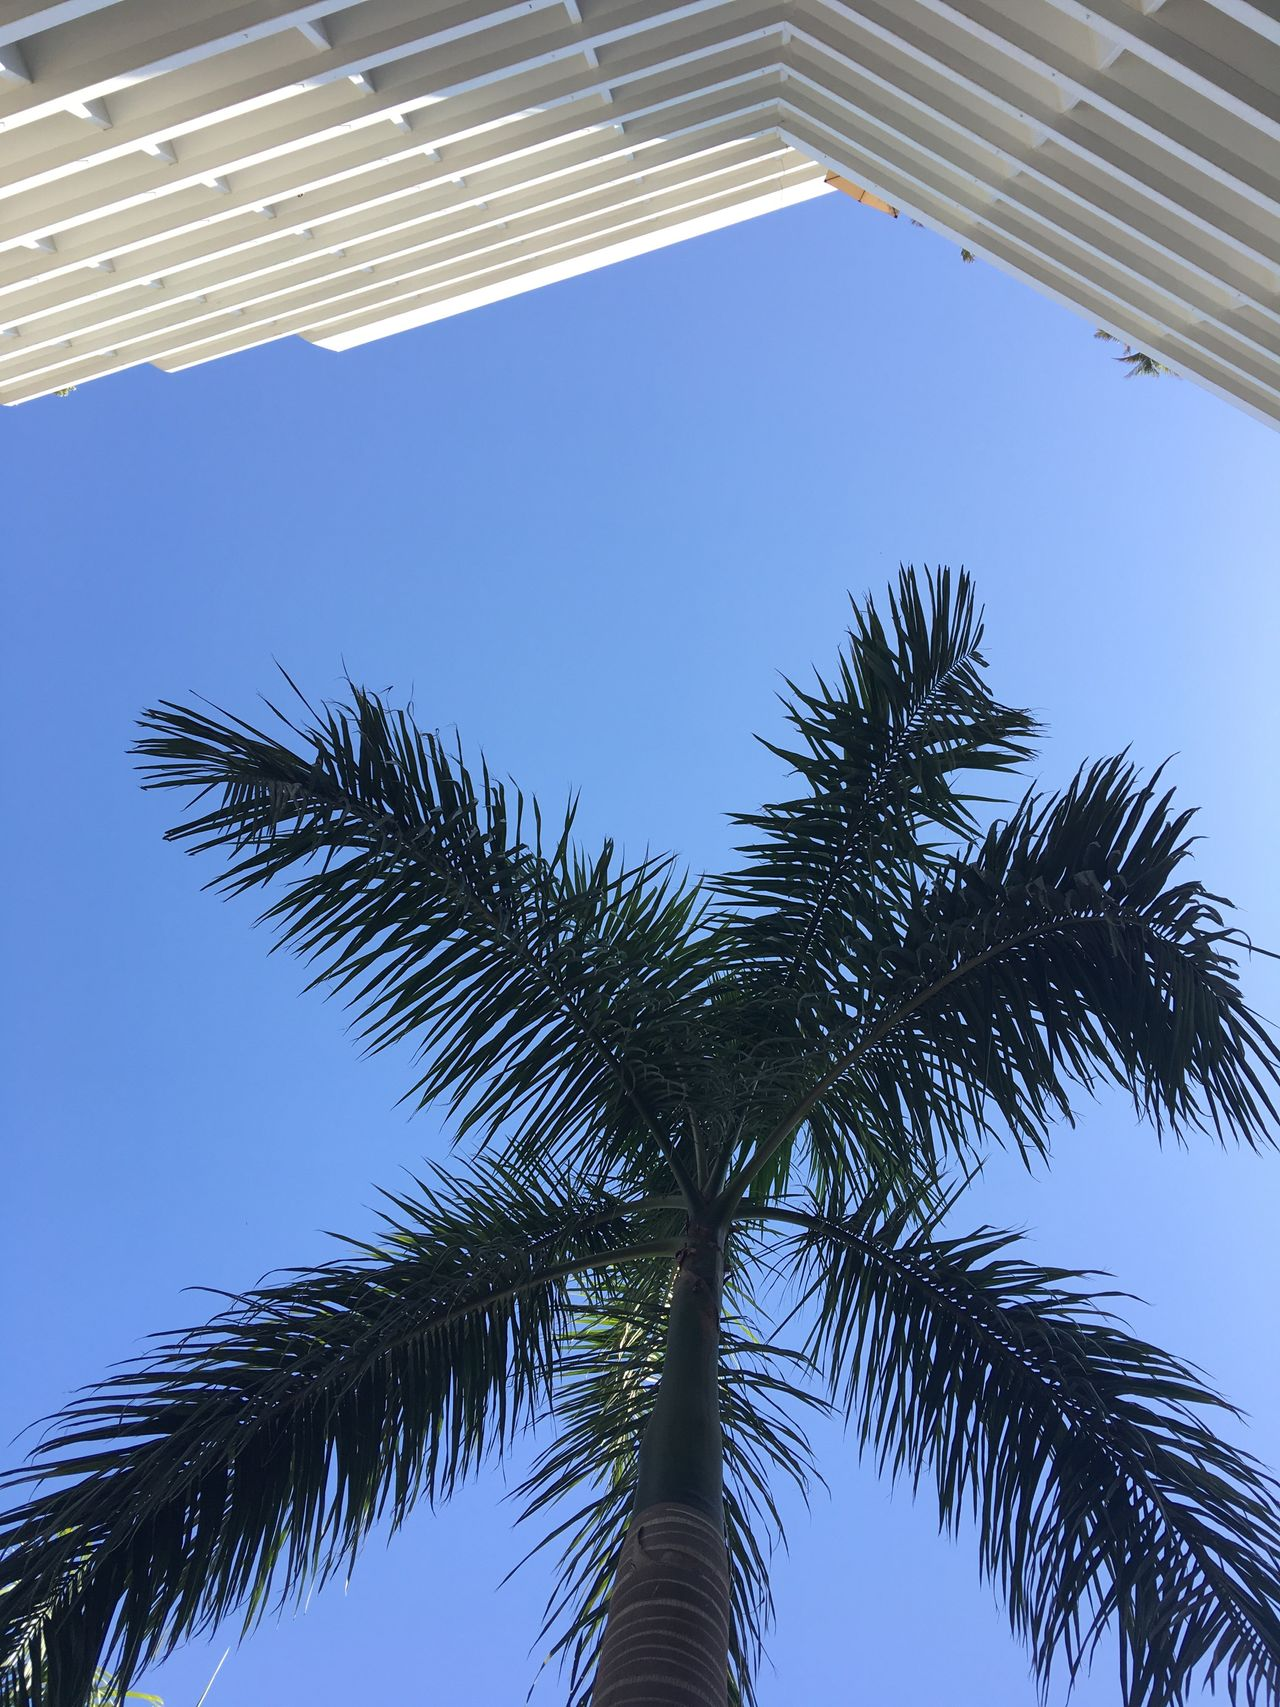 Low Angle View Tree Palm Tree Blue Day Clear Sky Outdoors Growth No People Sky Nature Close-up Vacations Vacation Blue Sky Minimalism Architecture Textured  Summer Green Color Shape Lines Textured